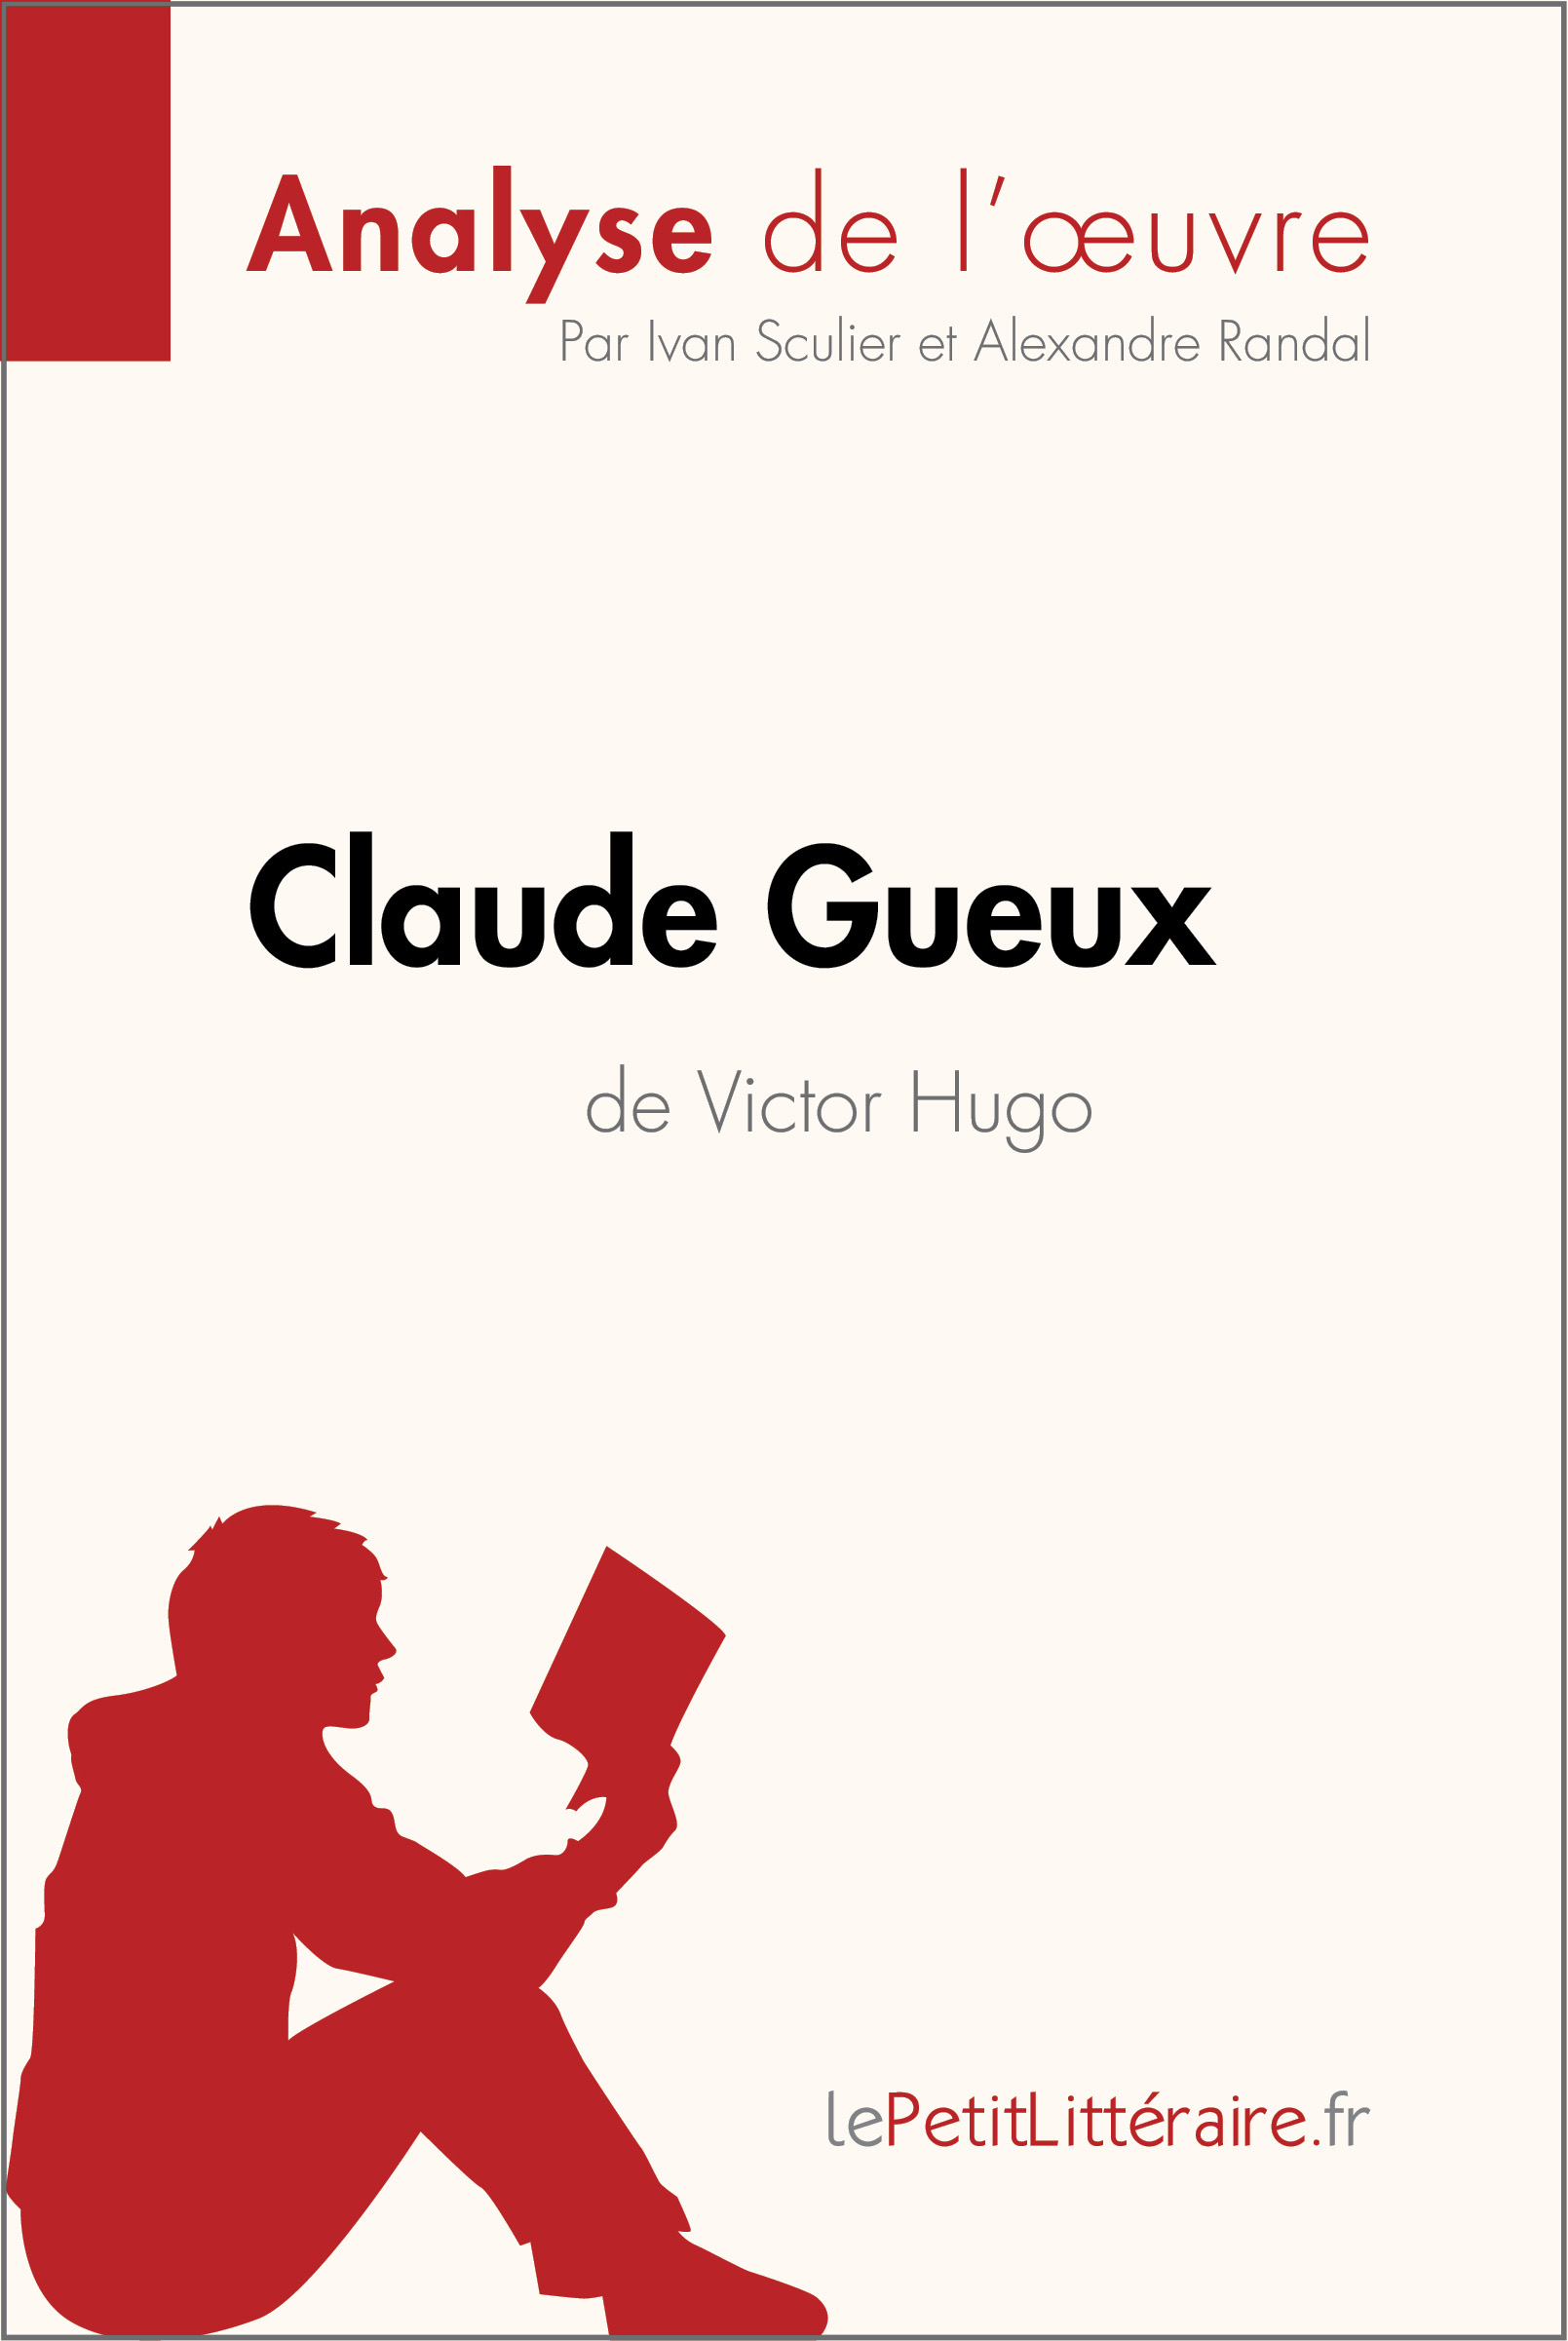 victor hugo claude gueux dissertation